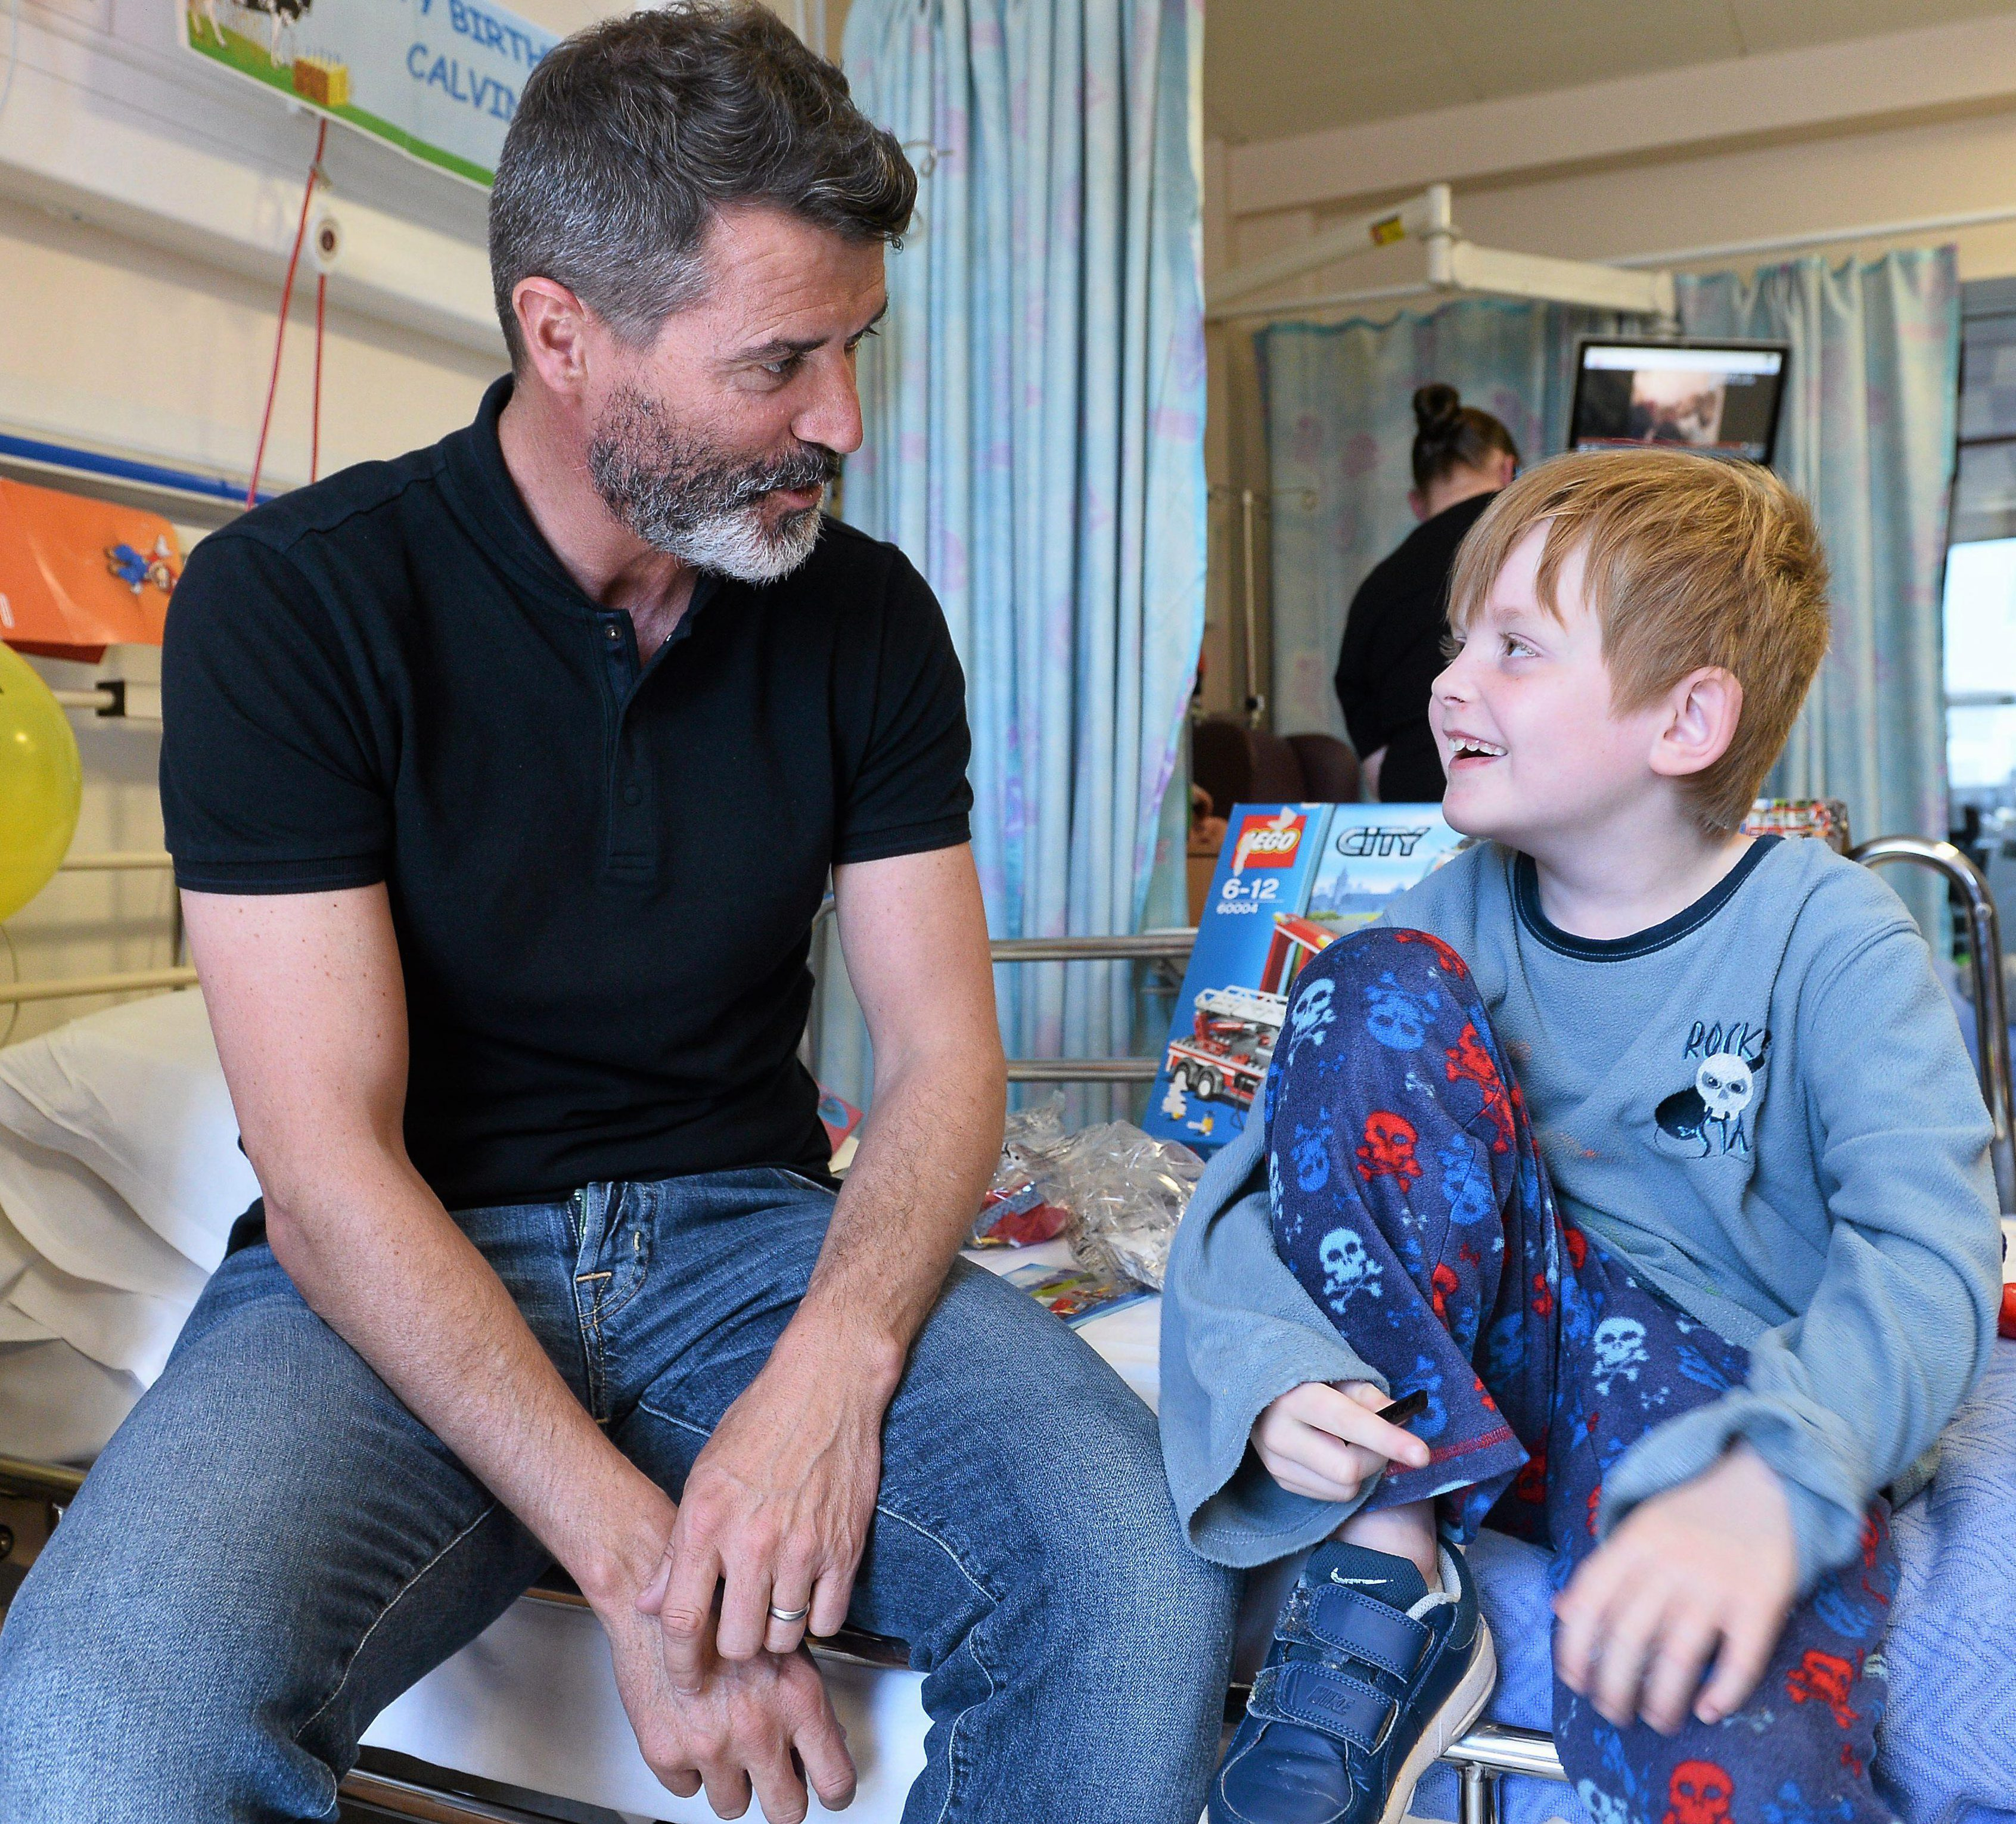 Keano proves that snubbing might young Rory might have been a blip. He is seen here visiting sick children in hospital